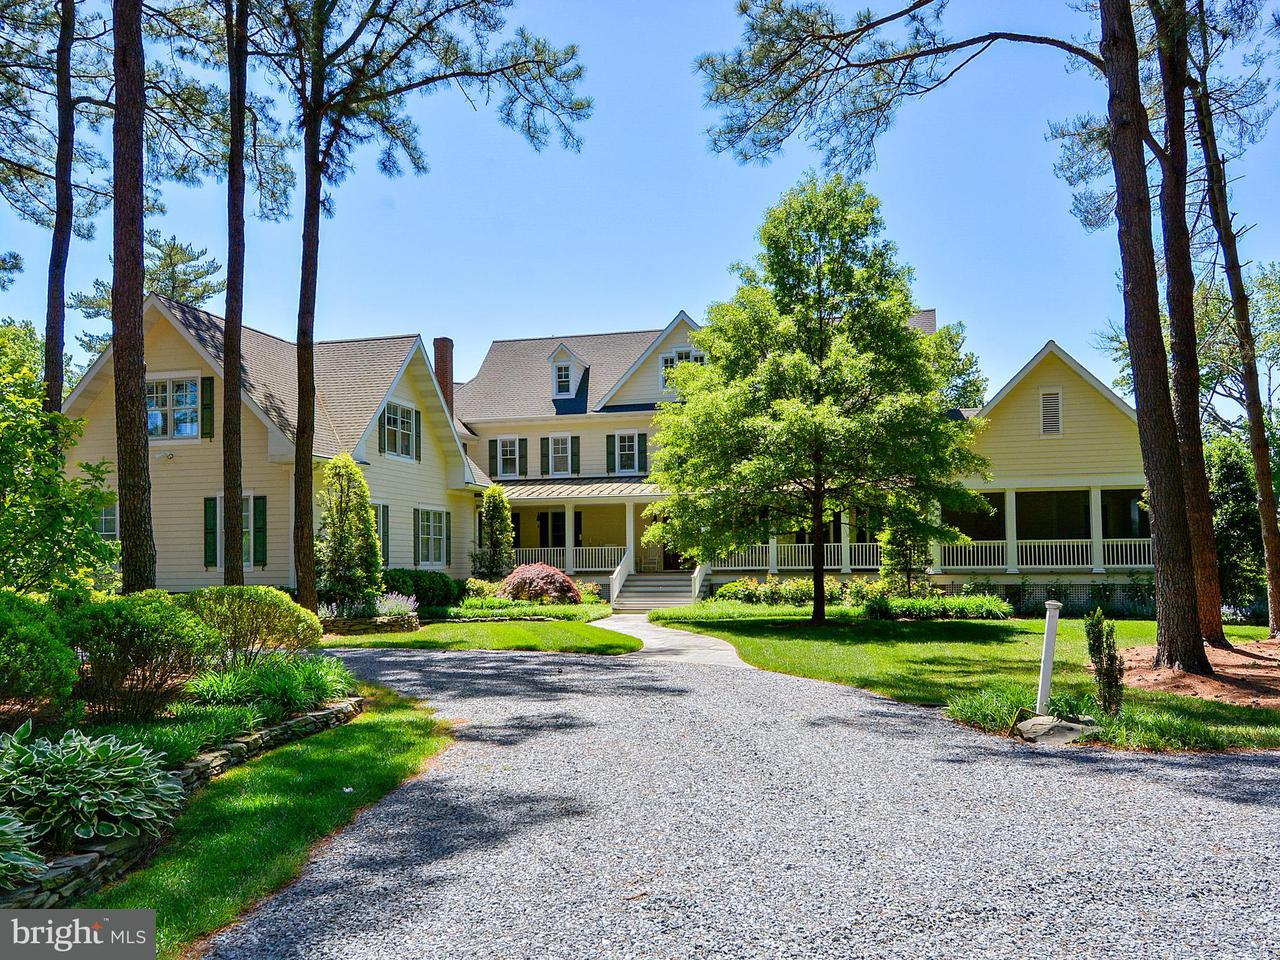 Single Family Home for Sale at 25927 Goose Neck Road 25927 Goose Neck Road Royal Oak, Maryland 21662 United States